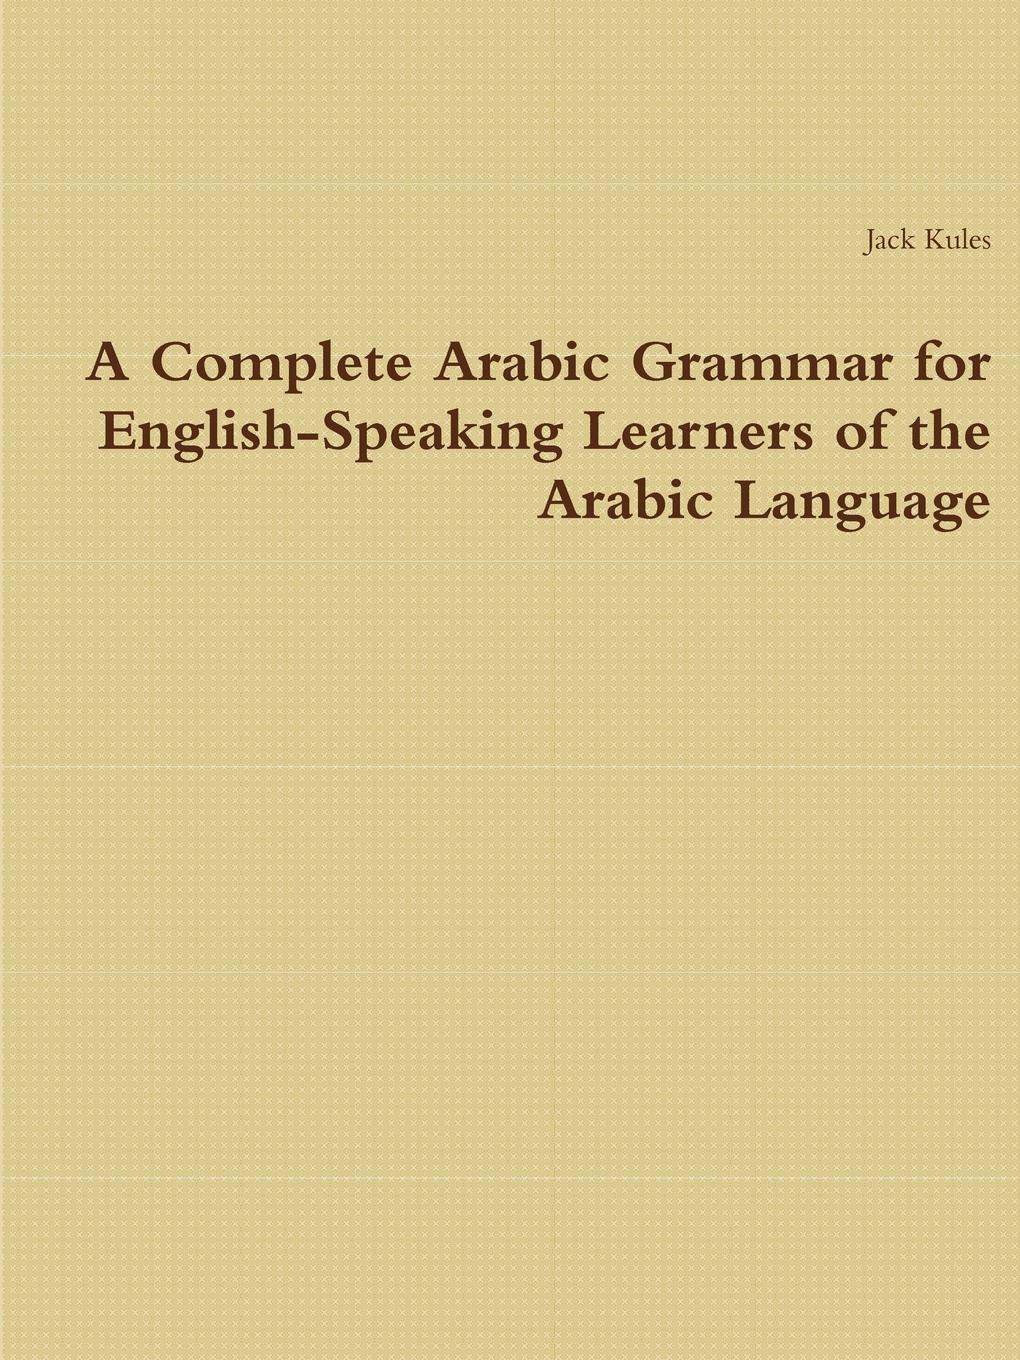 Jack Kules A Complete Arabic Grammar for English-Speaking Learners of the Arabic Language fundamentals of english grammar workbook